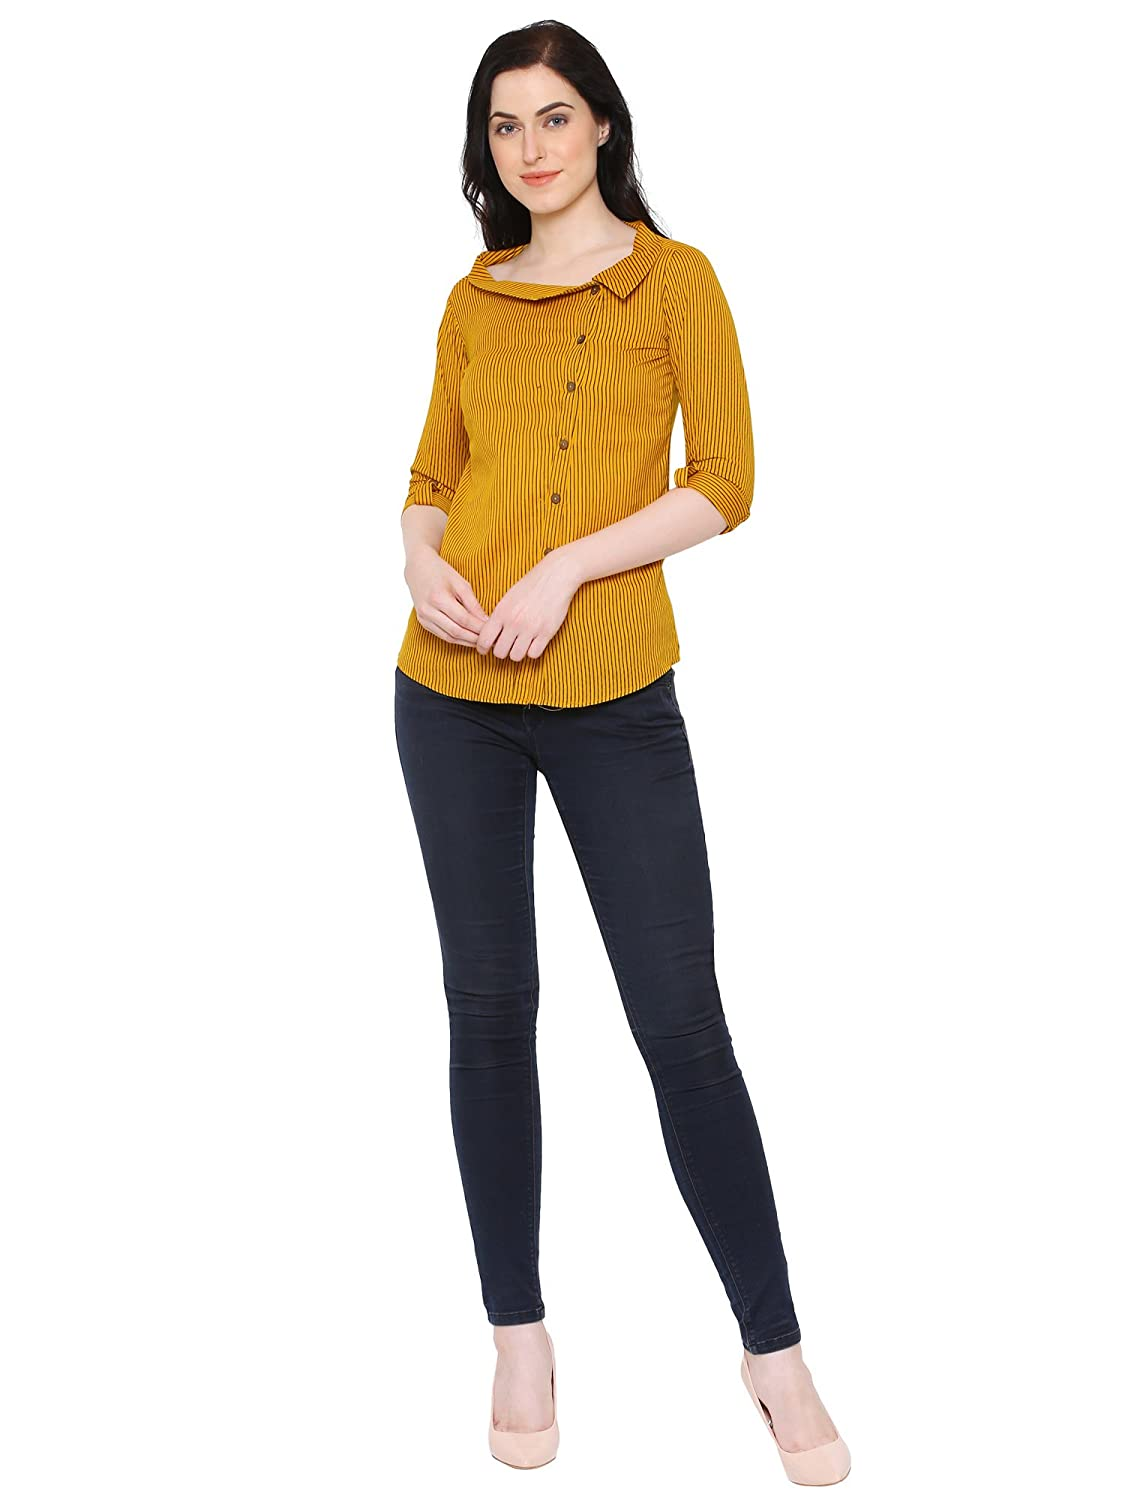 8a59eab1 Yash Gallery Women's Cotton Flex Stripe Print Western Top (Yellow):  Amazon.in: Clothing & Accessories